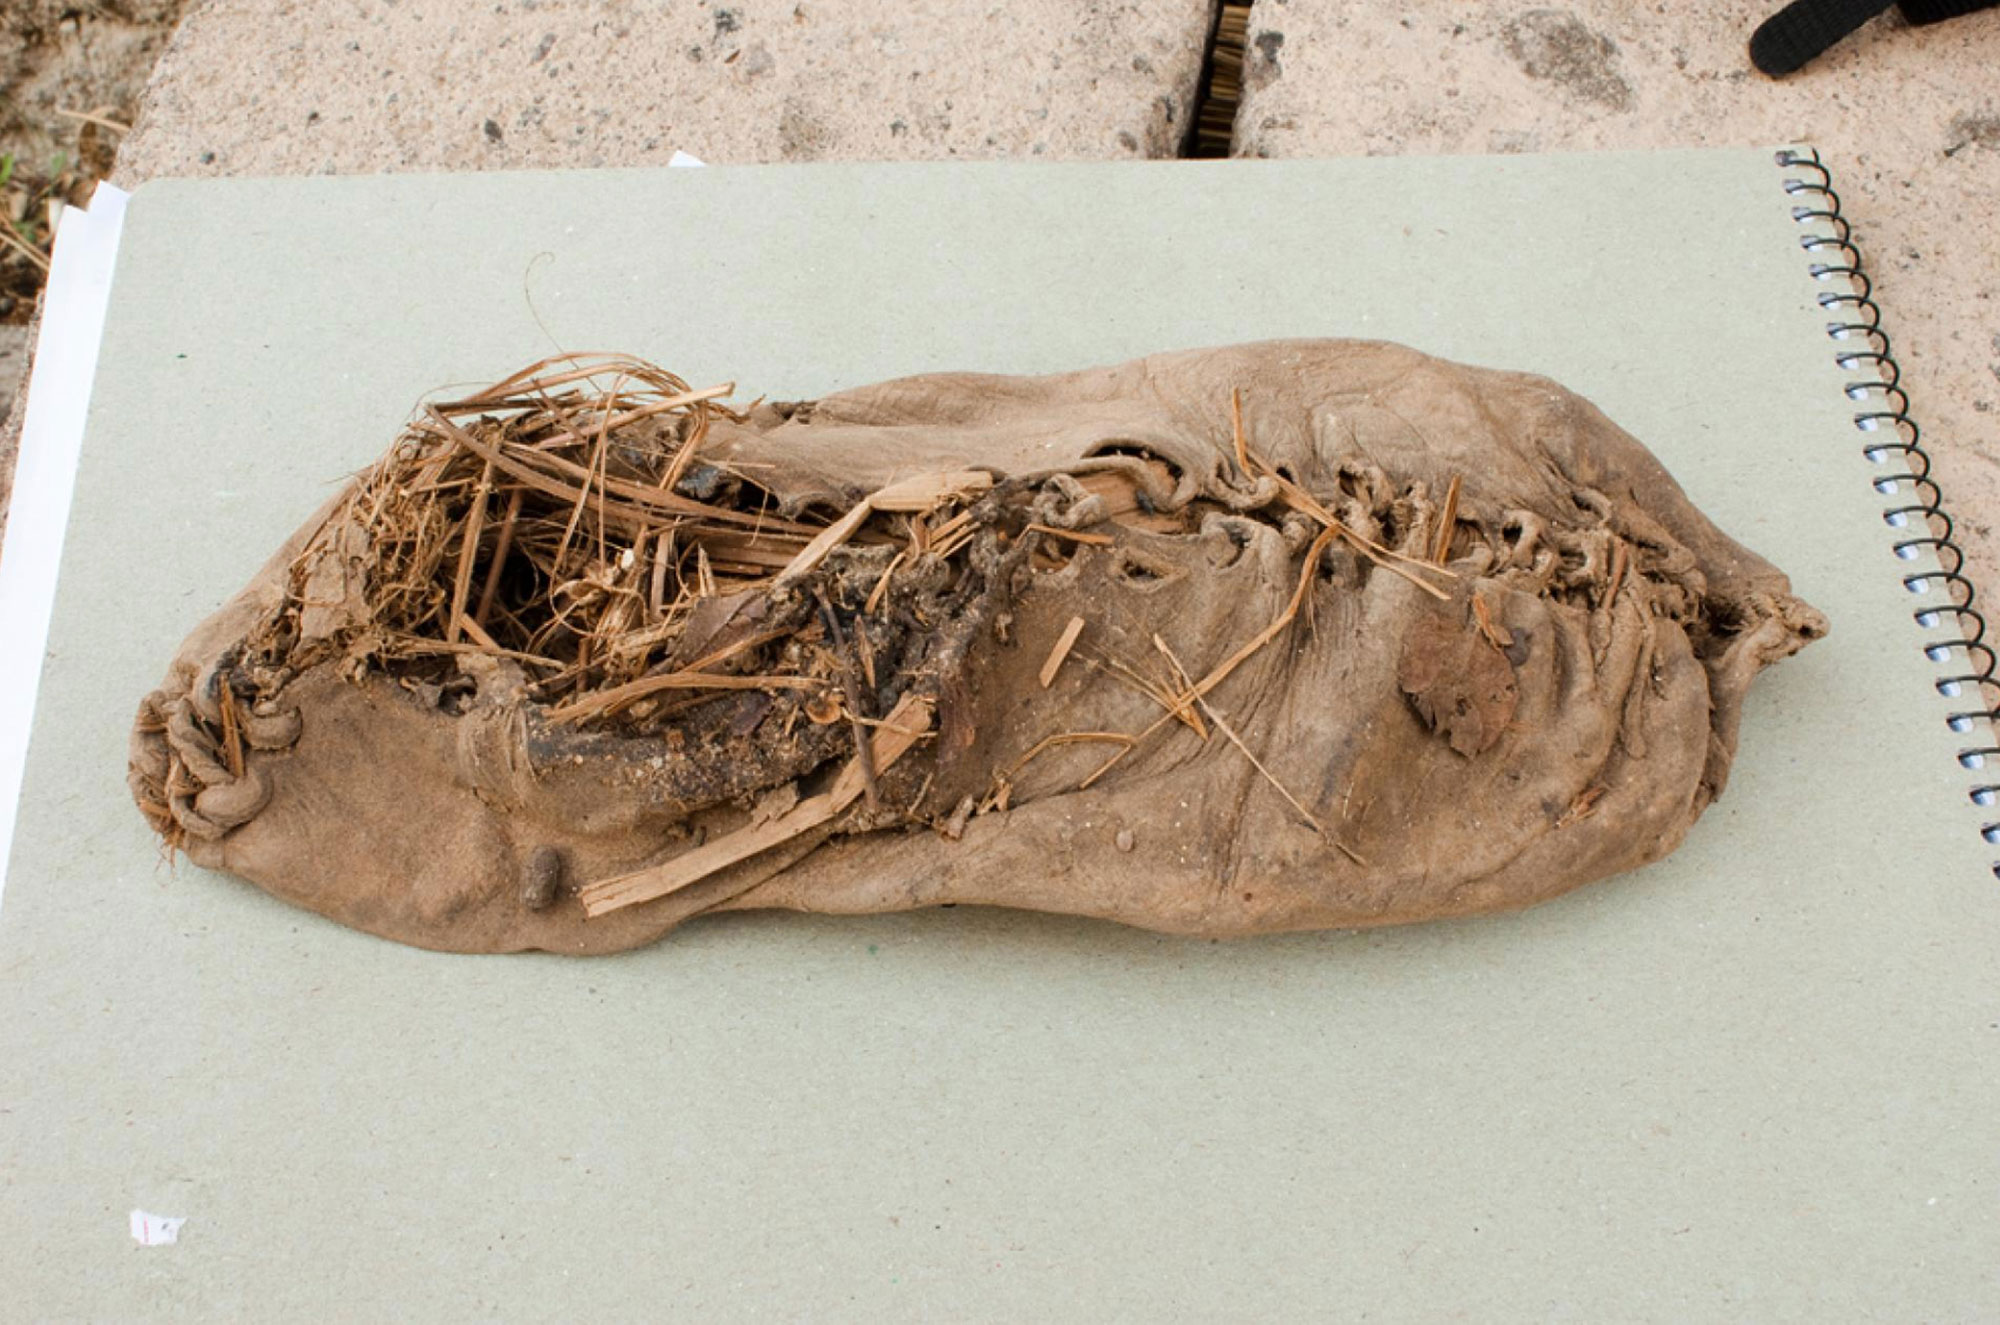 Archeologists found 5000 year old leather shoes